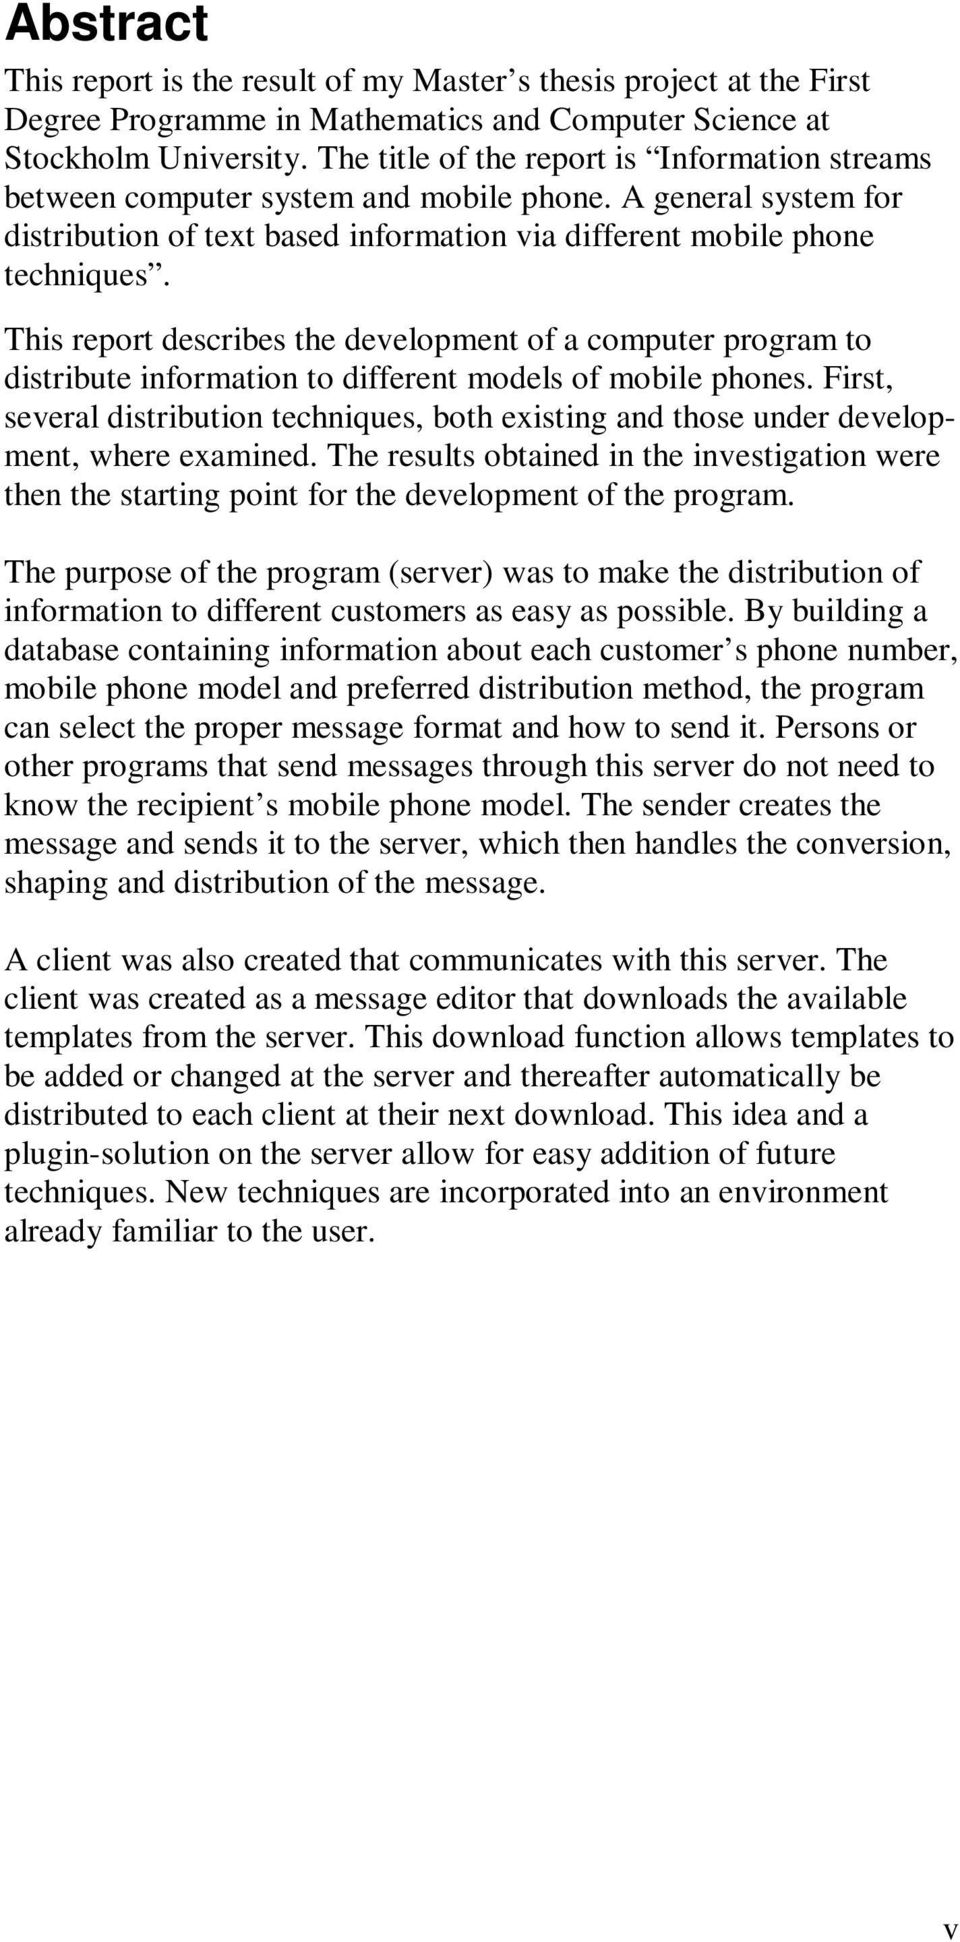 This report describes the development of a computer program to distribute information to different models of mobile phones.